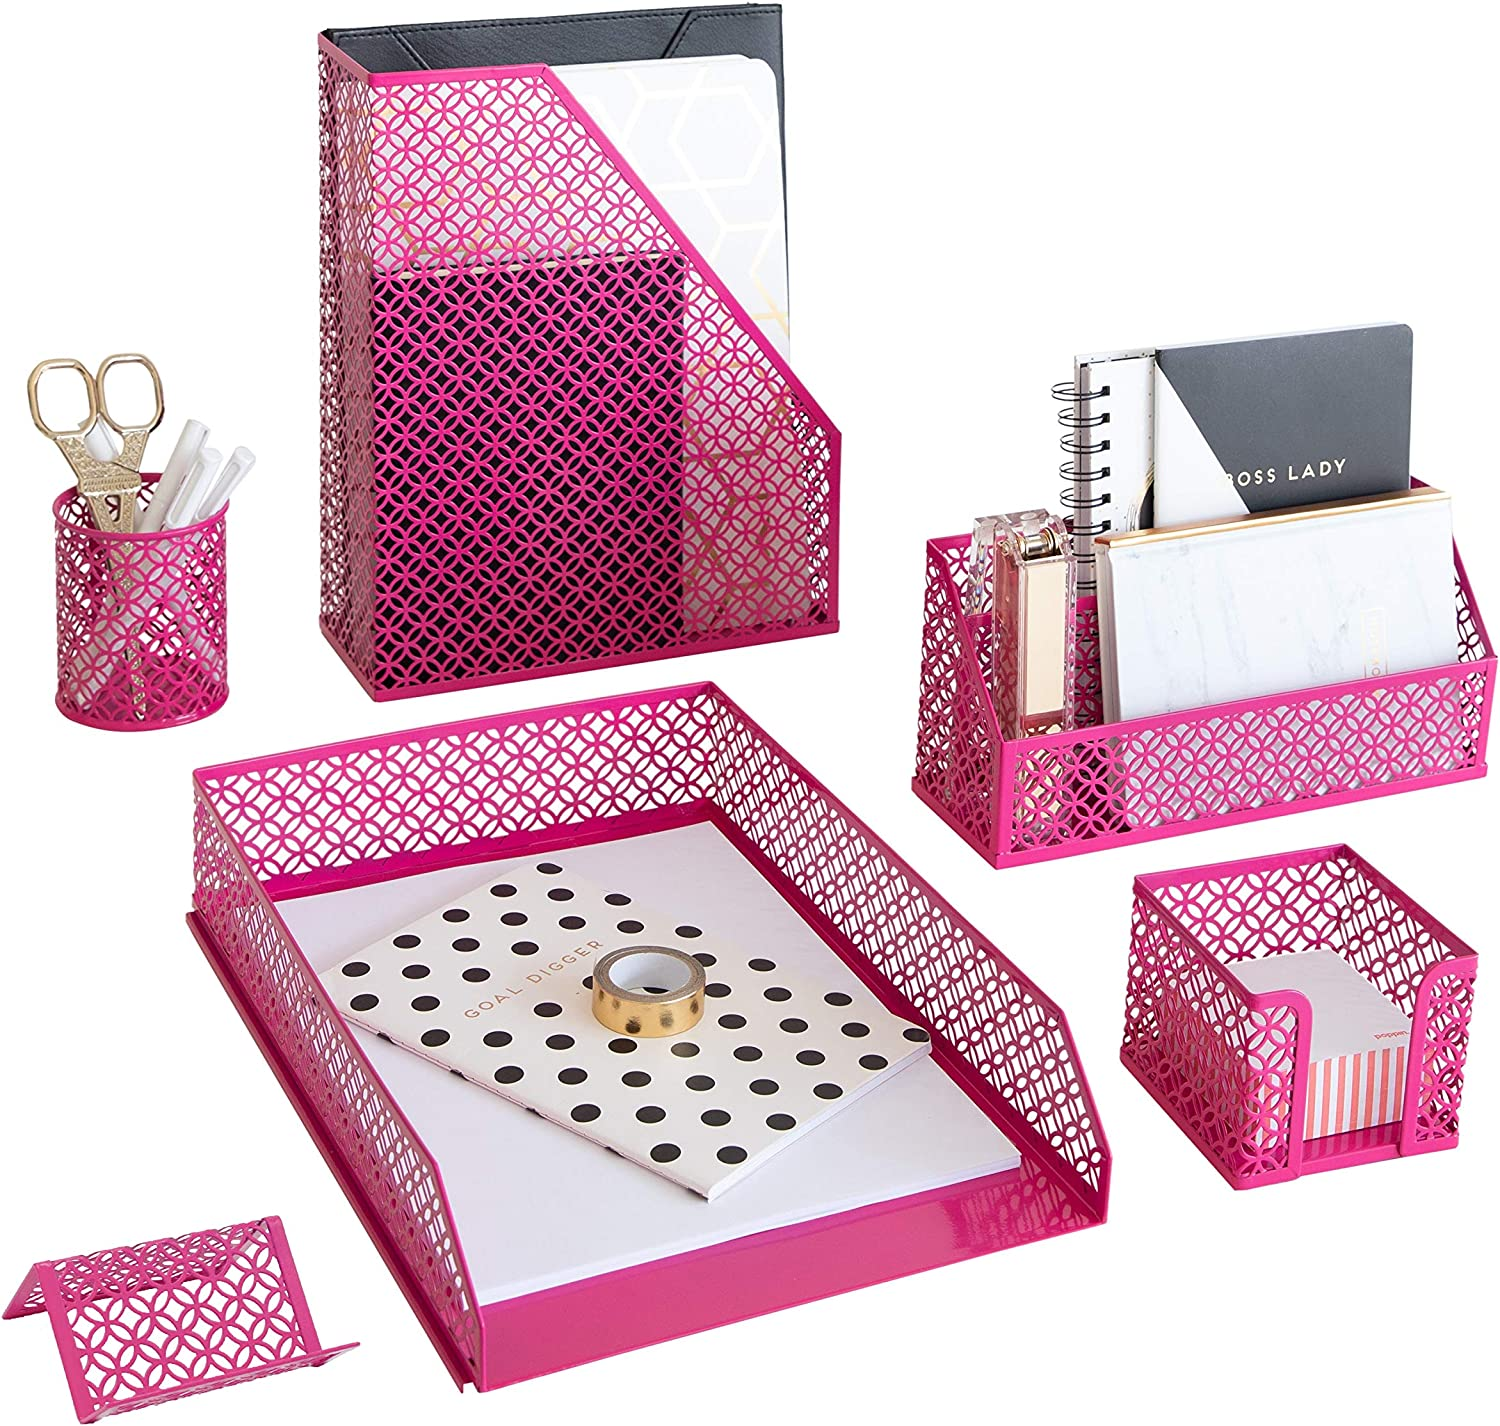 Blu Monaco Pink Office Supplies Hot Pink Desk Accessories for Women Office - 6 Piece Cute Pink Desk Organizer Set